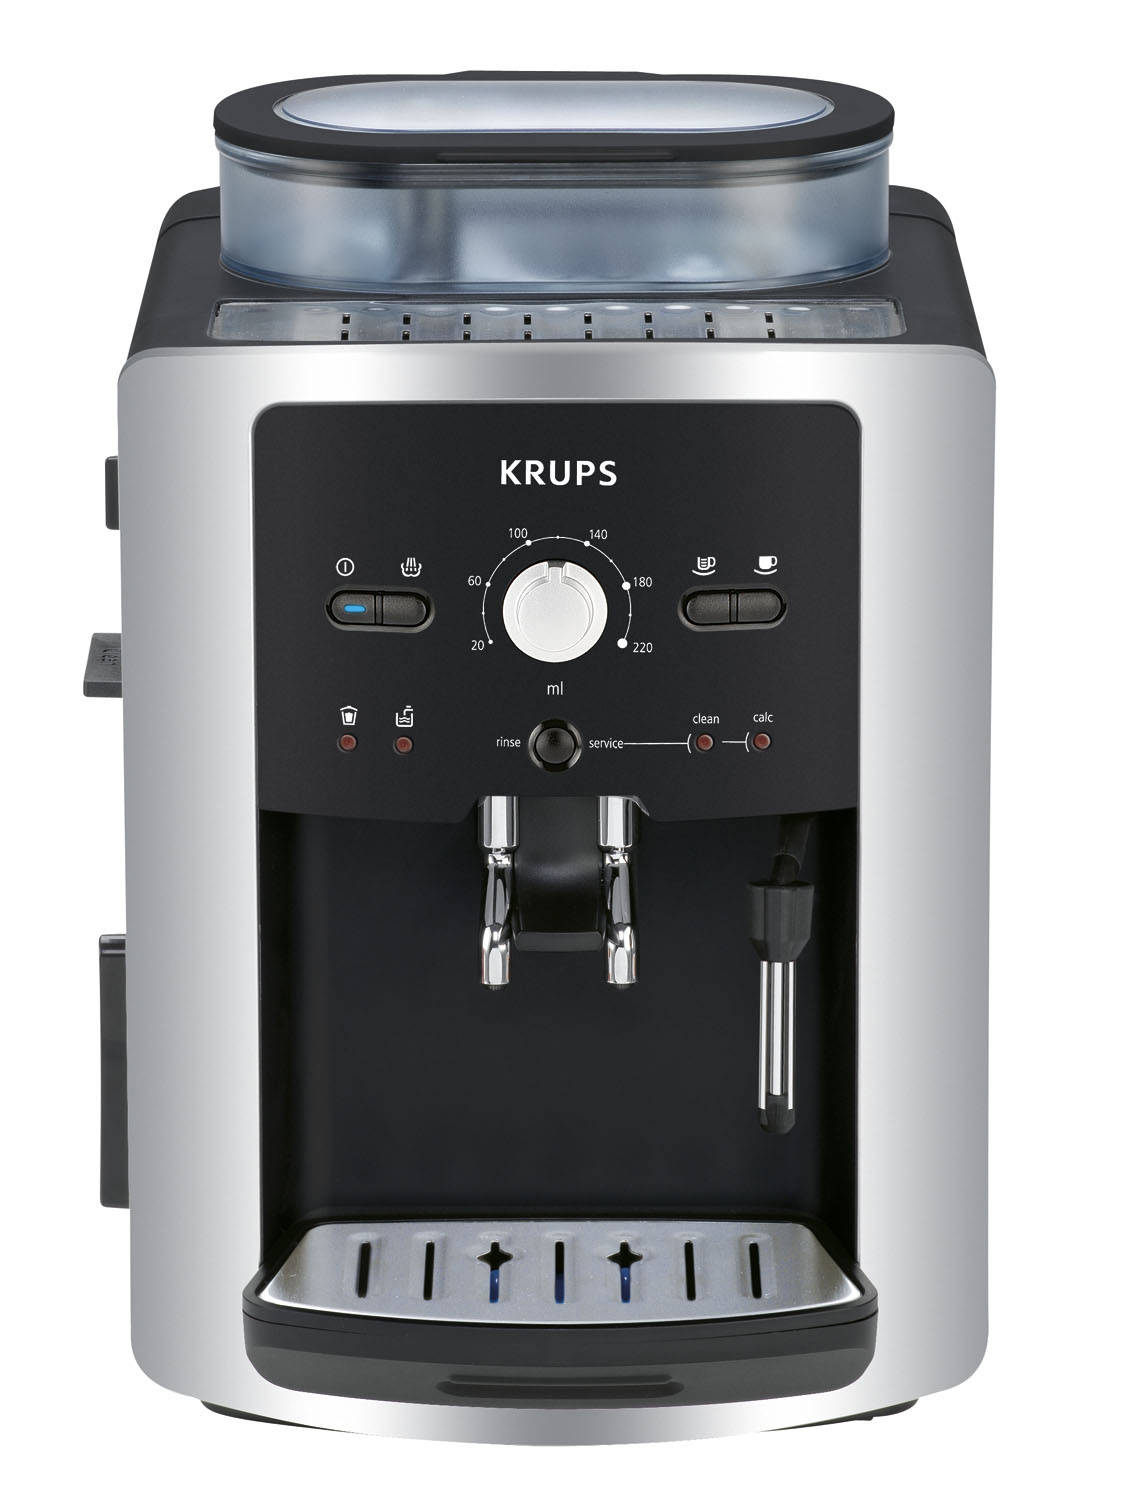 Krups Coffee Maker Km1000 Manual : Krups by Giles McWilliam at Coroflot.com